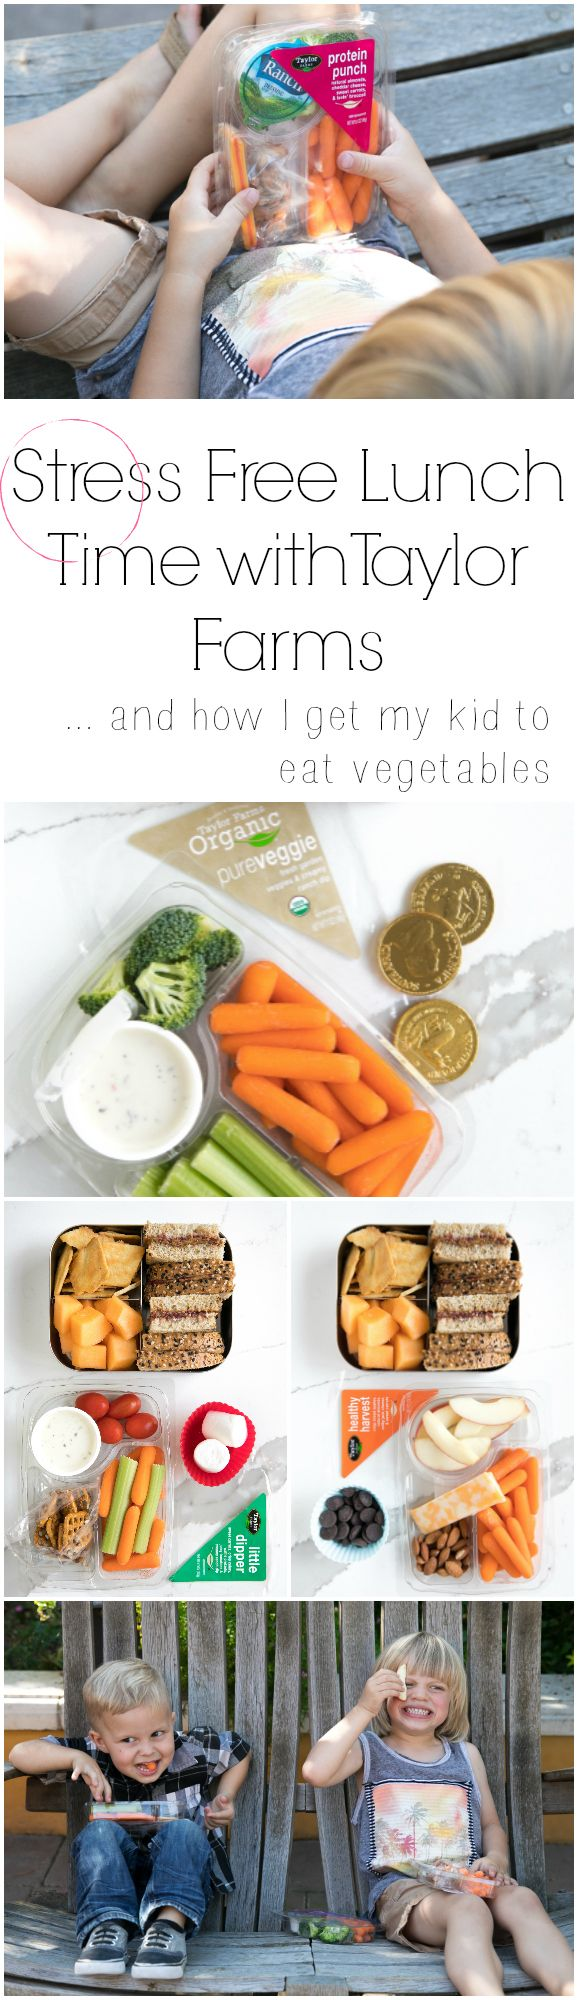 Easy and stress free lunch ideas for both kiddos and grown ups (and how I get my 3 year old to get his veggies!) #kids #kidfood #lunch #lunchboxideas #sponsored